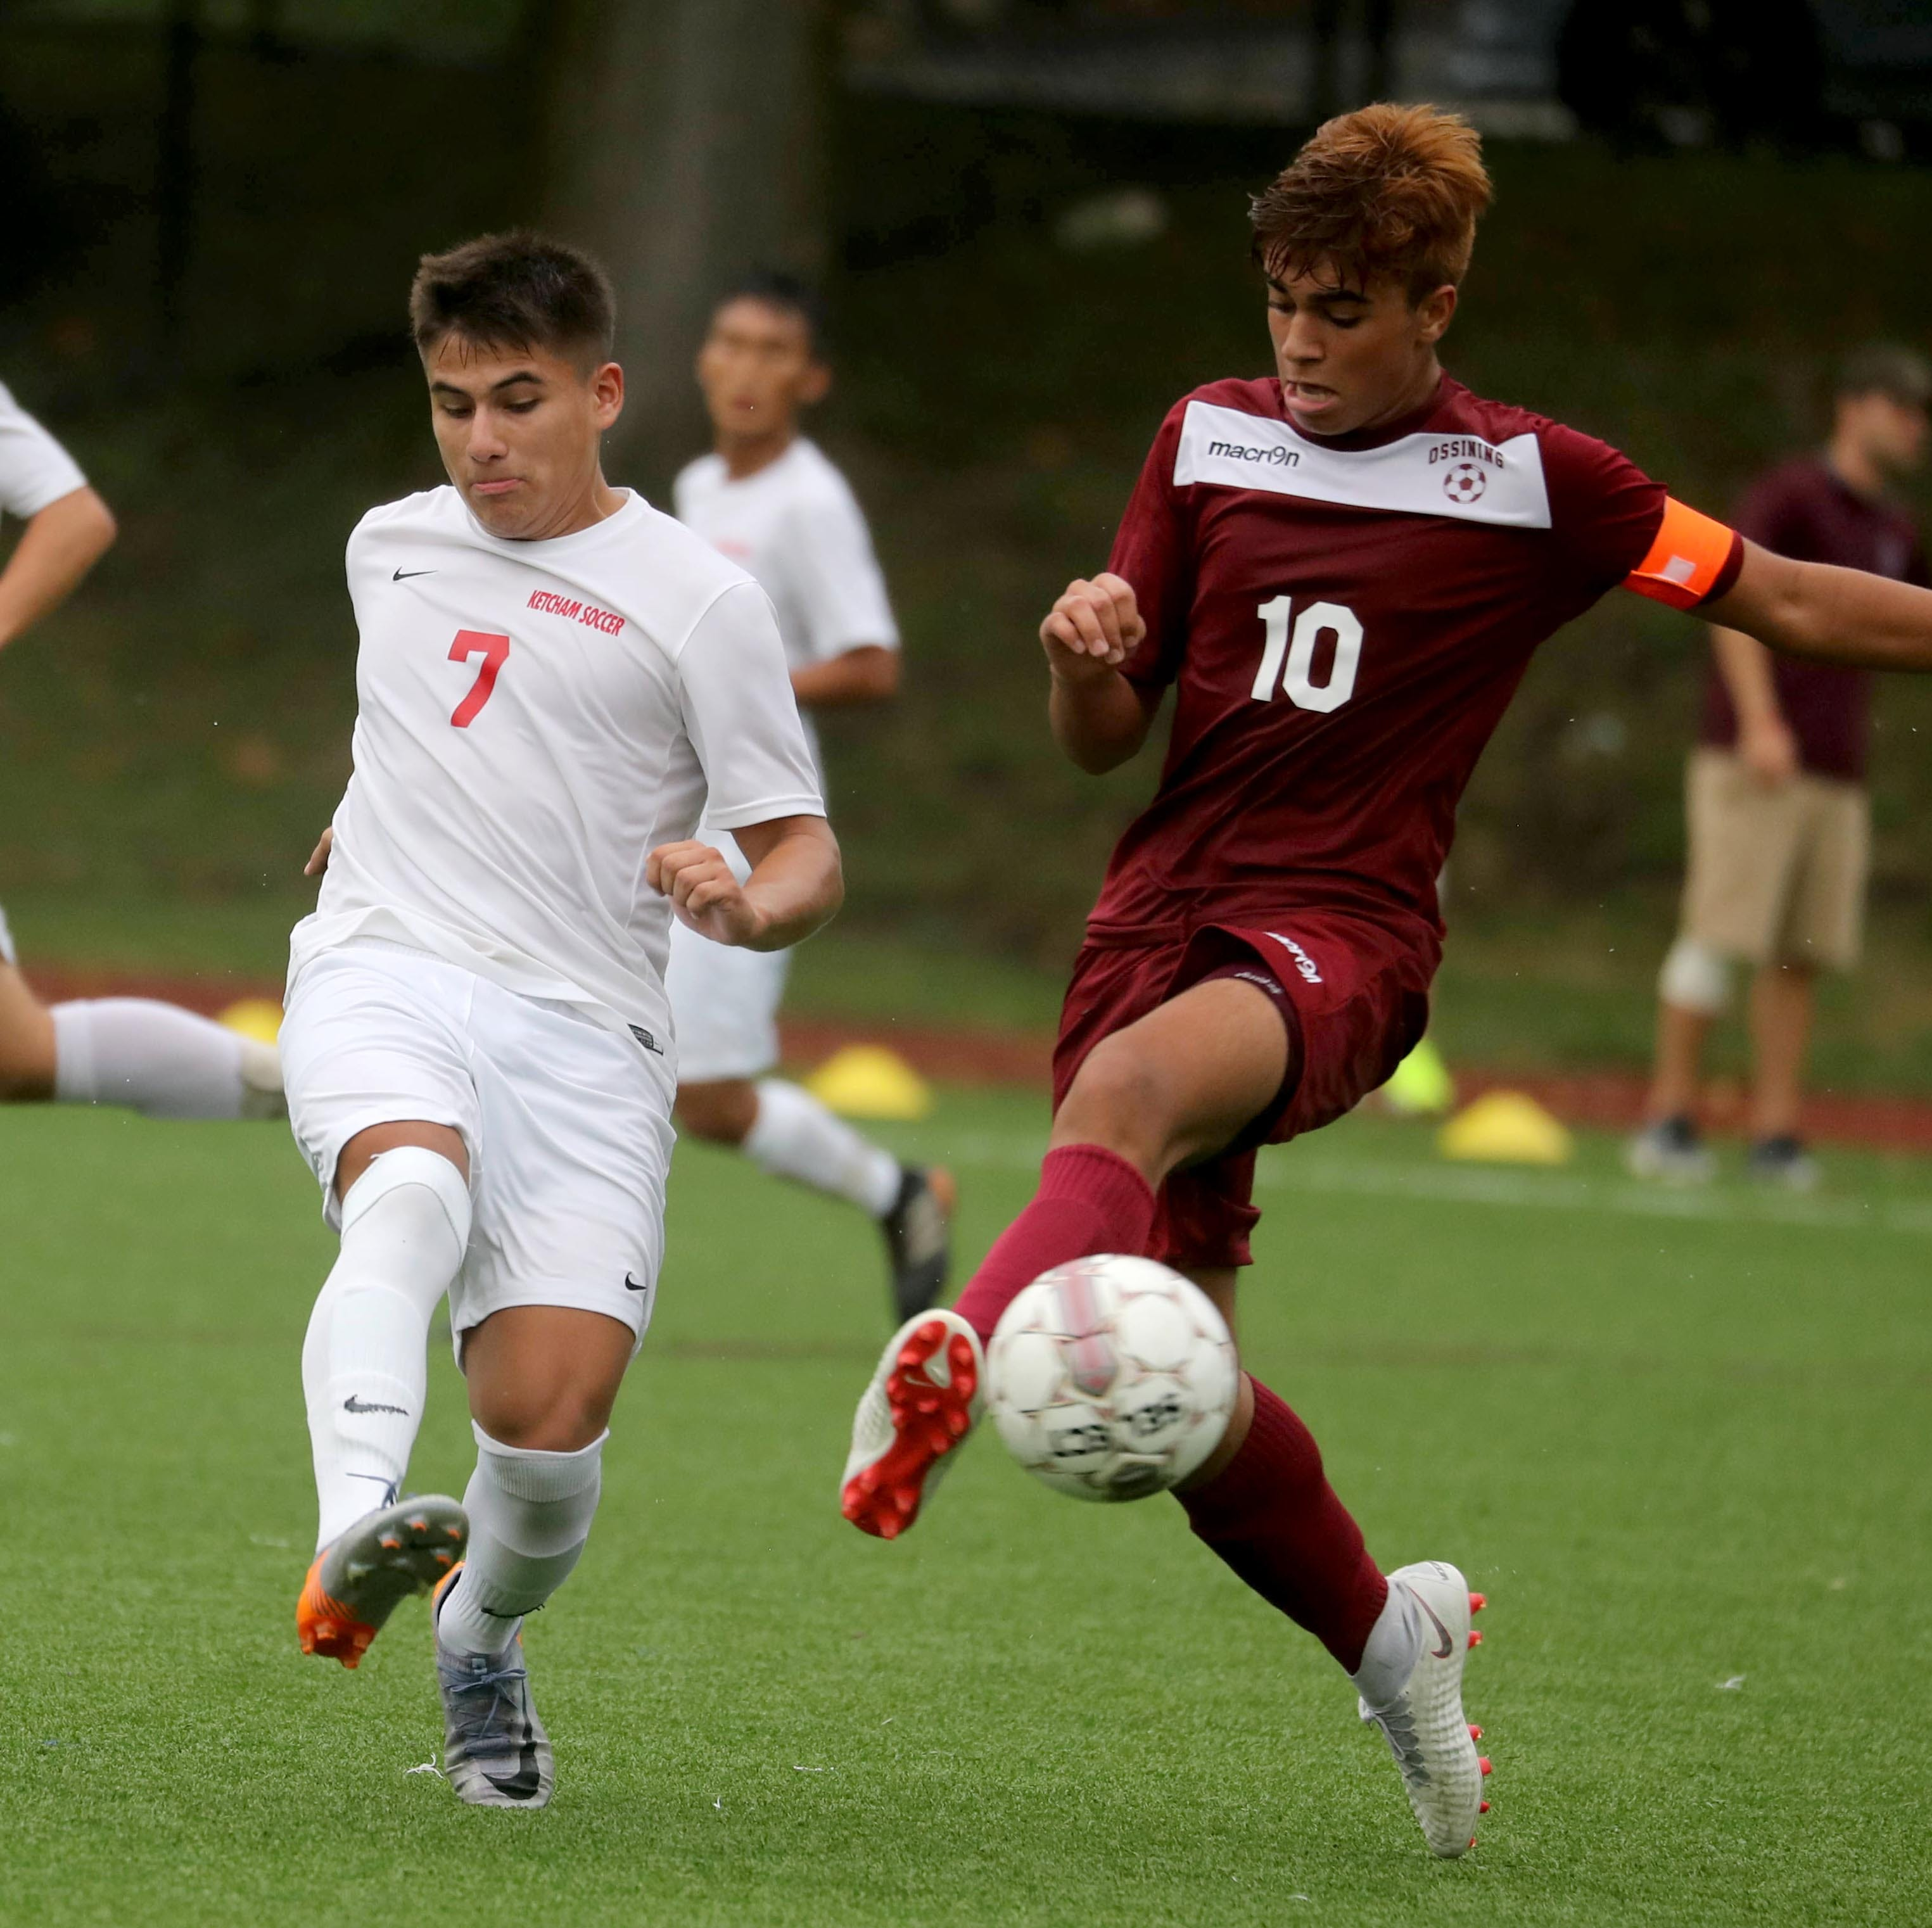 Boys soccer: Class AA tournament primer; Ossining, Arlington, New Ro lead the charge